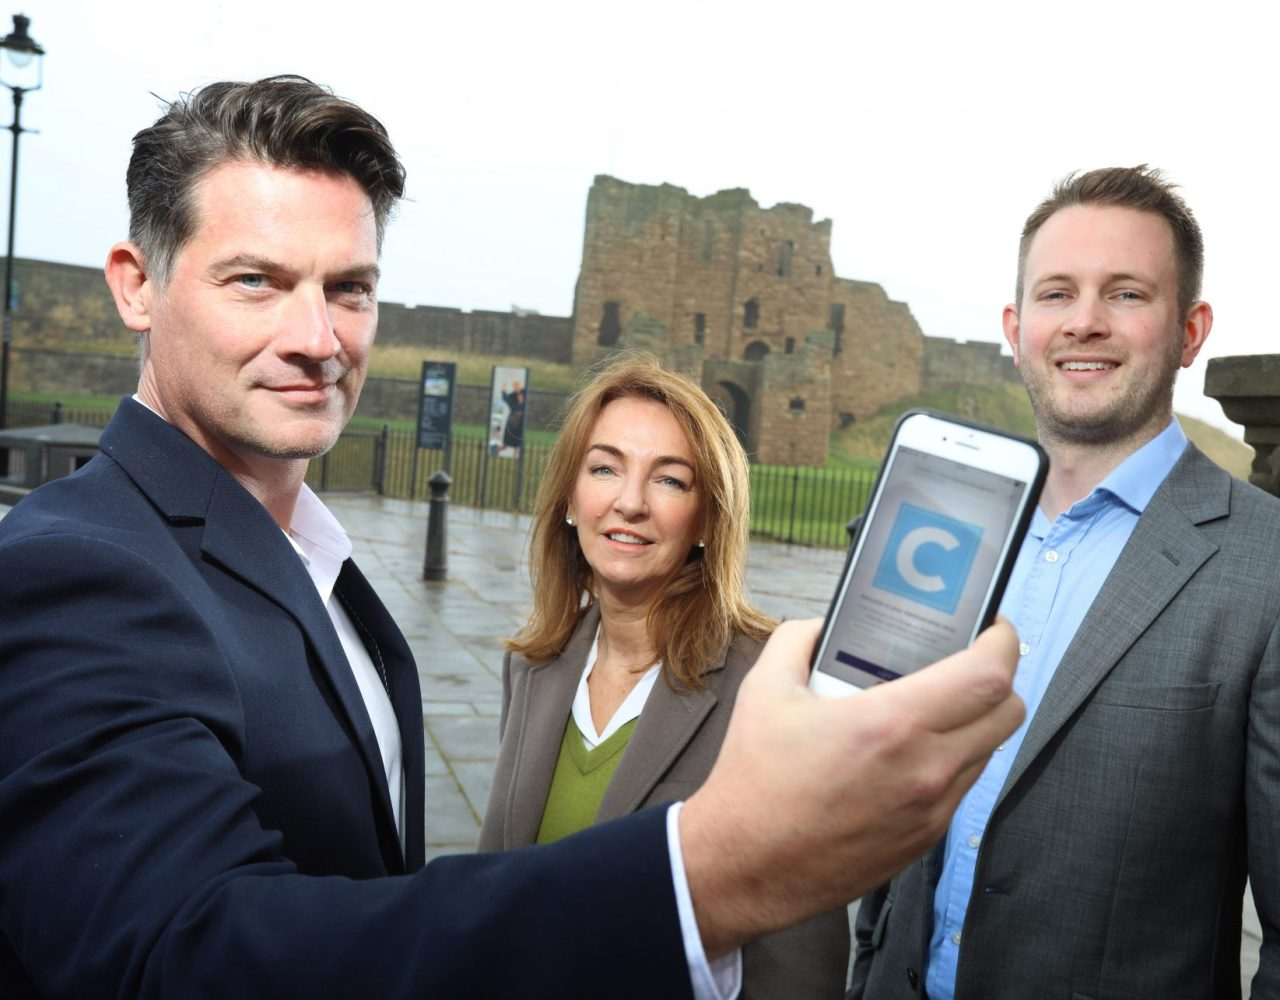 Regional businesses receive £1.185m of investment from NEL Fund Managers